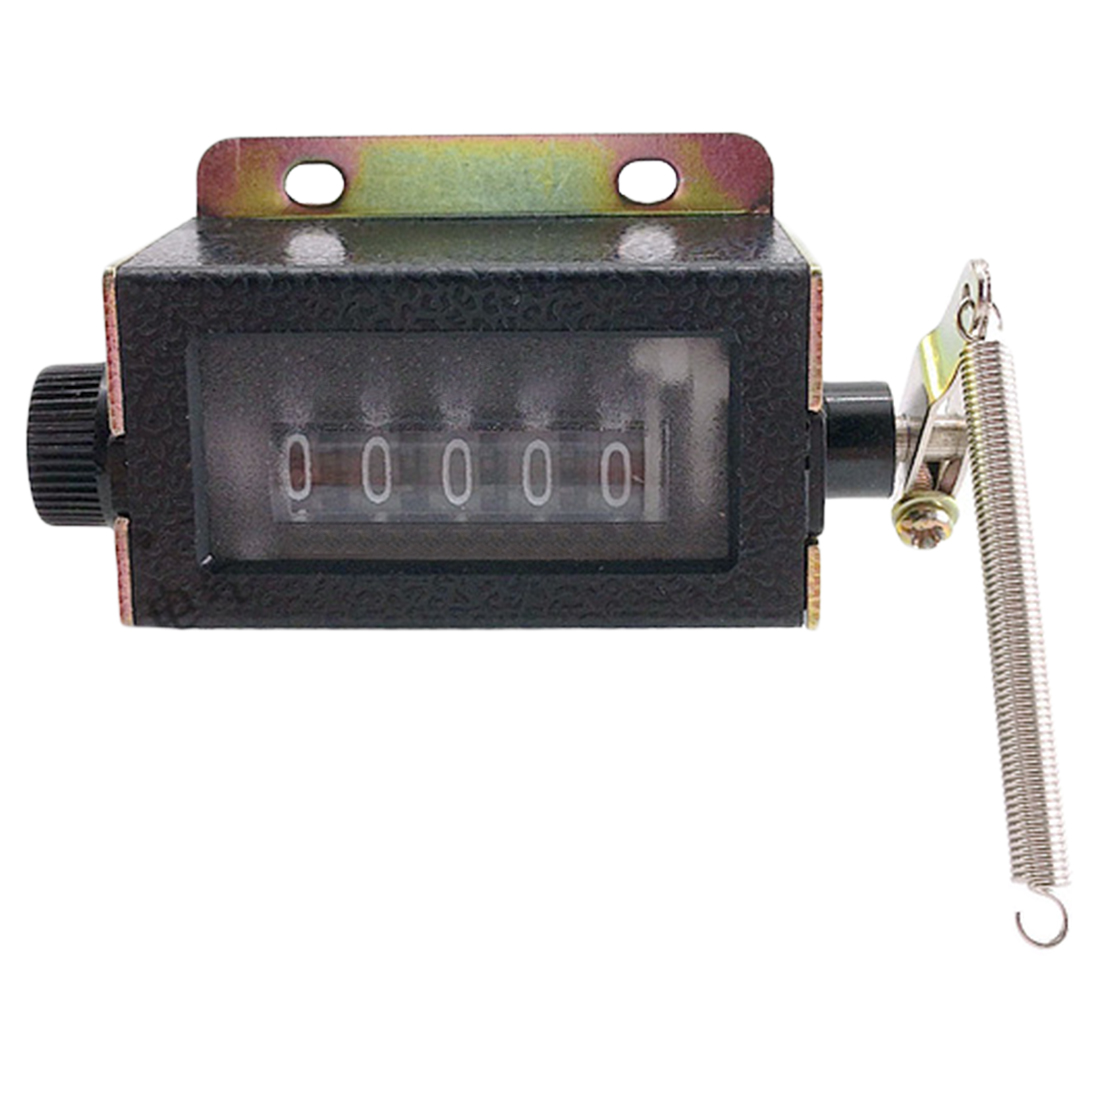 High-quality 5 Digits Resettable Mechanical Pull Stroke Mechanical Hand Tally Stroke Click Counting Mount Counter Manual